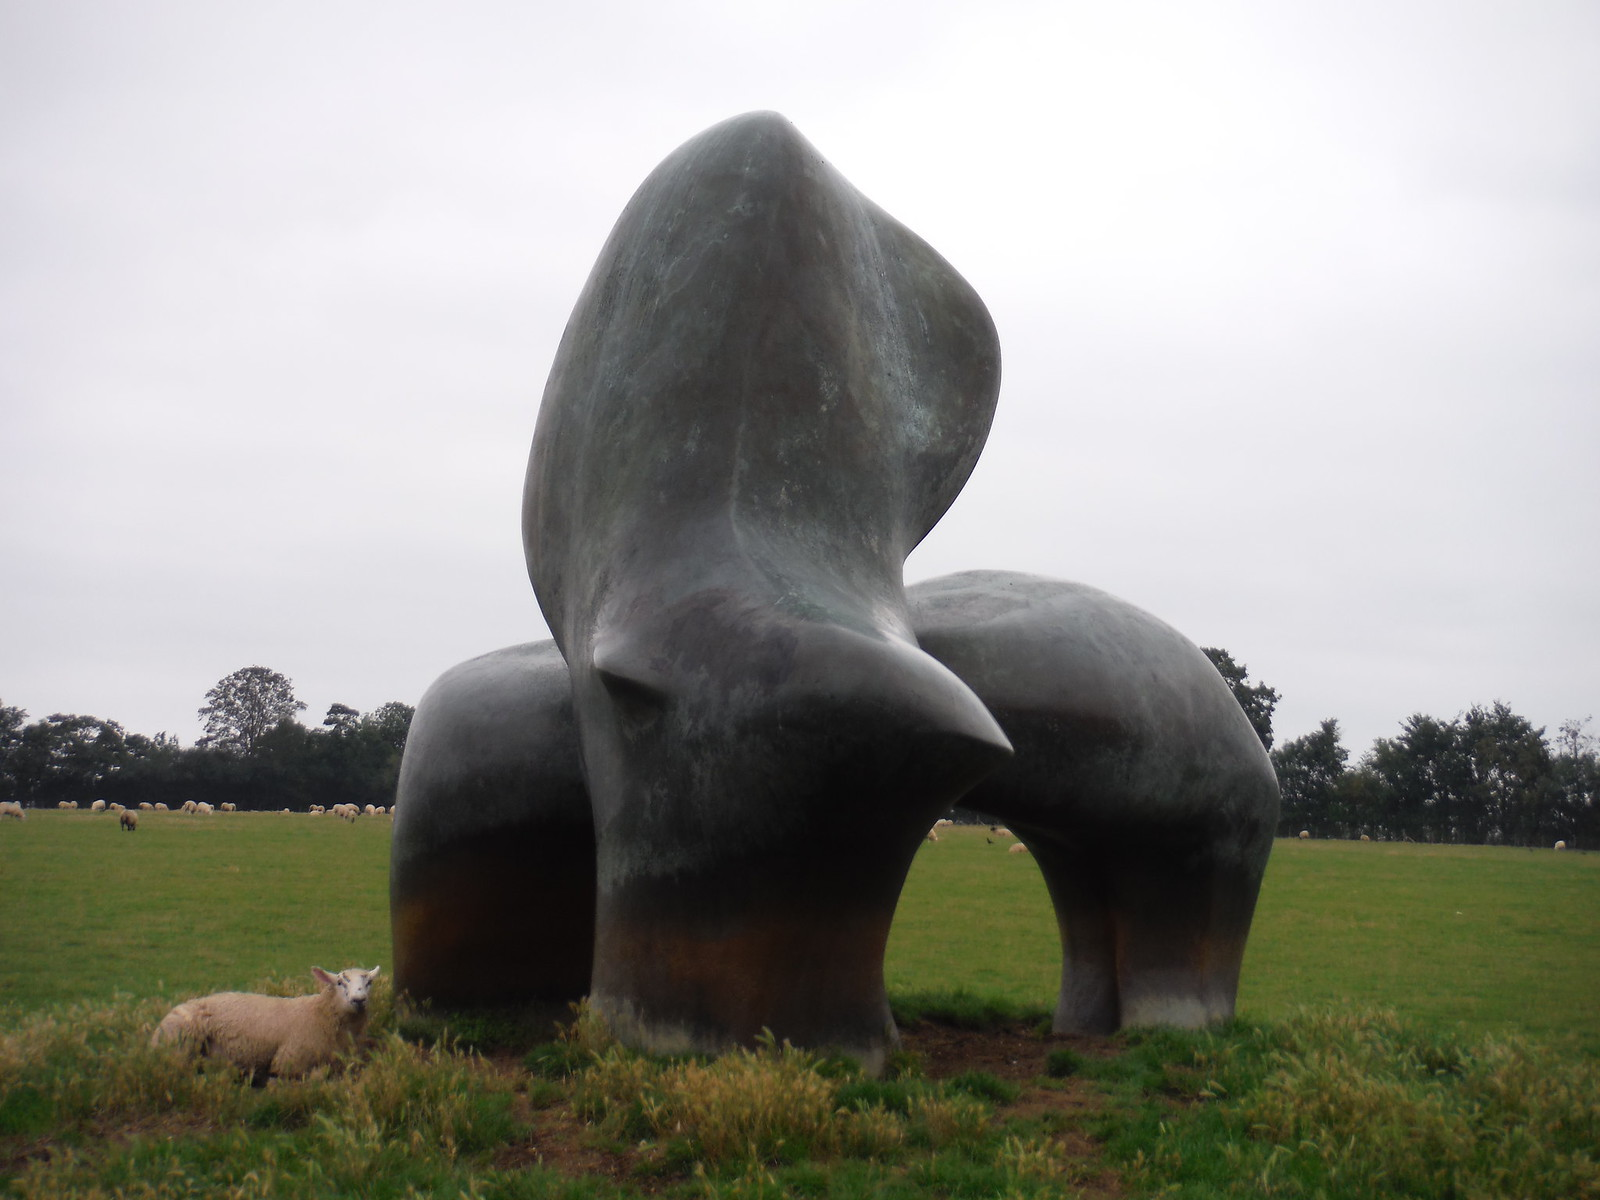 Sheep Piece (1971-72) [III} SWC Walk 164 Roydon to Sawbridgeworth via Henry Moore Foundation